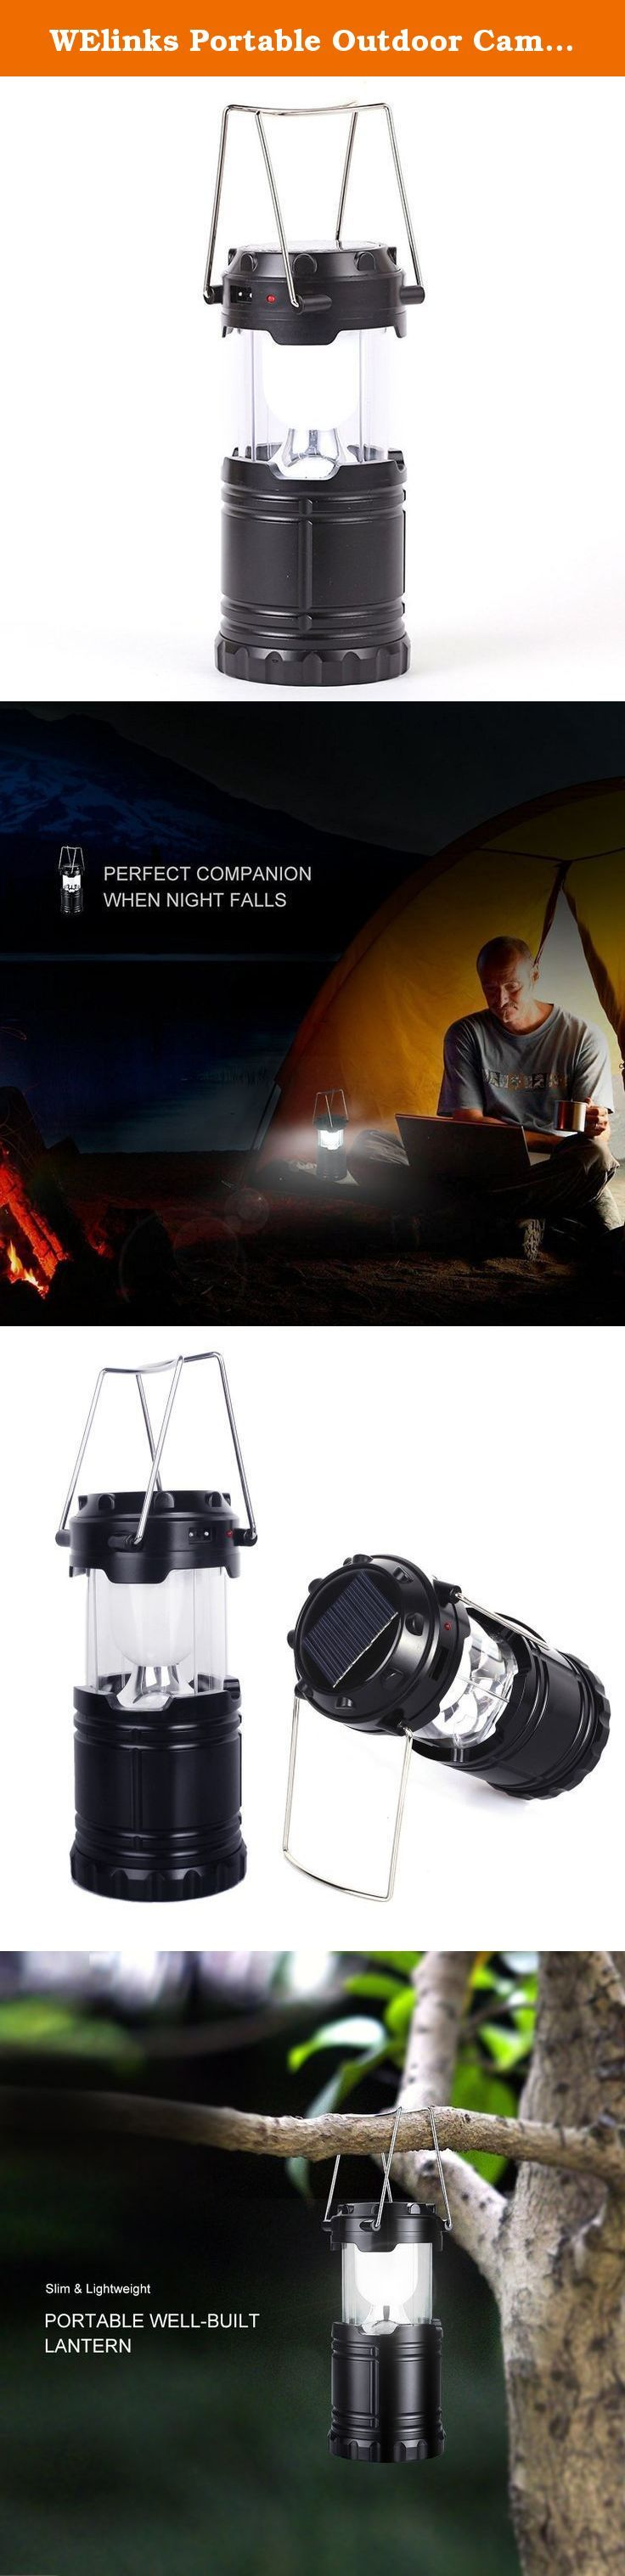 WElinks Portable Outdoor Camping Lanterns/Solar Flashlights/Bright LED Collapsible Water Resistant Rechargeable Camp Lanterns Black. Description: This pretty cool little LED lantern was designed in smooth elegant cylinder shape which represents the attitude towards a simple,fashionable modern lifestyle The lantern is built for both the indoors & outdoors. You can take this portable bright lantern as an emergency light, camping lantern, or just for decoration as you wish Water resistant It…